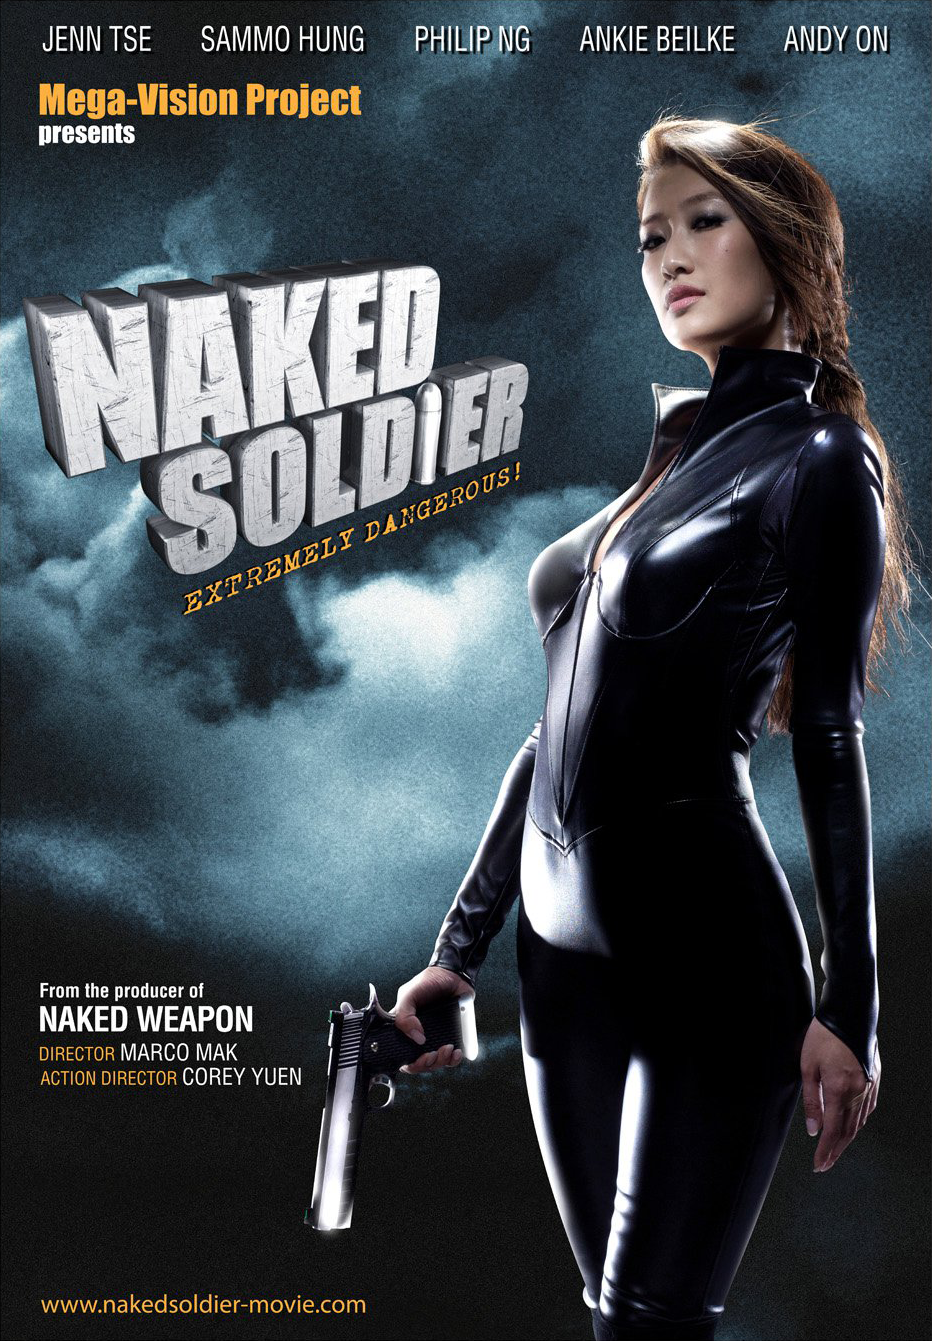 Naked Soldier 2012 Movie Trailer And Poster Marco Mak